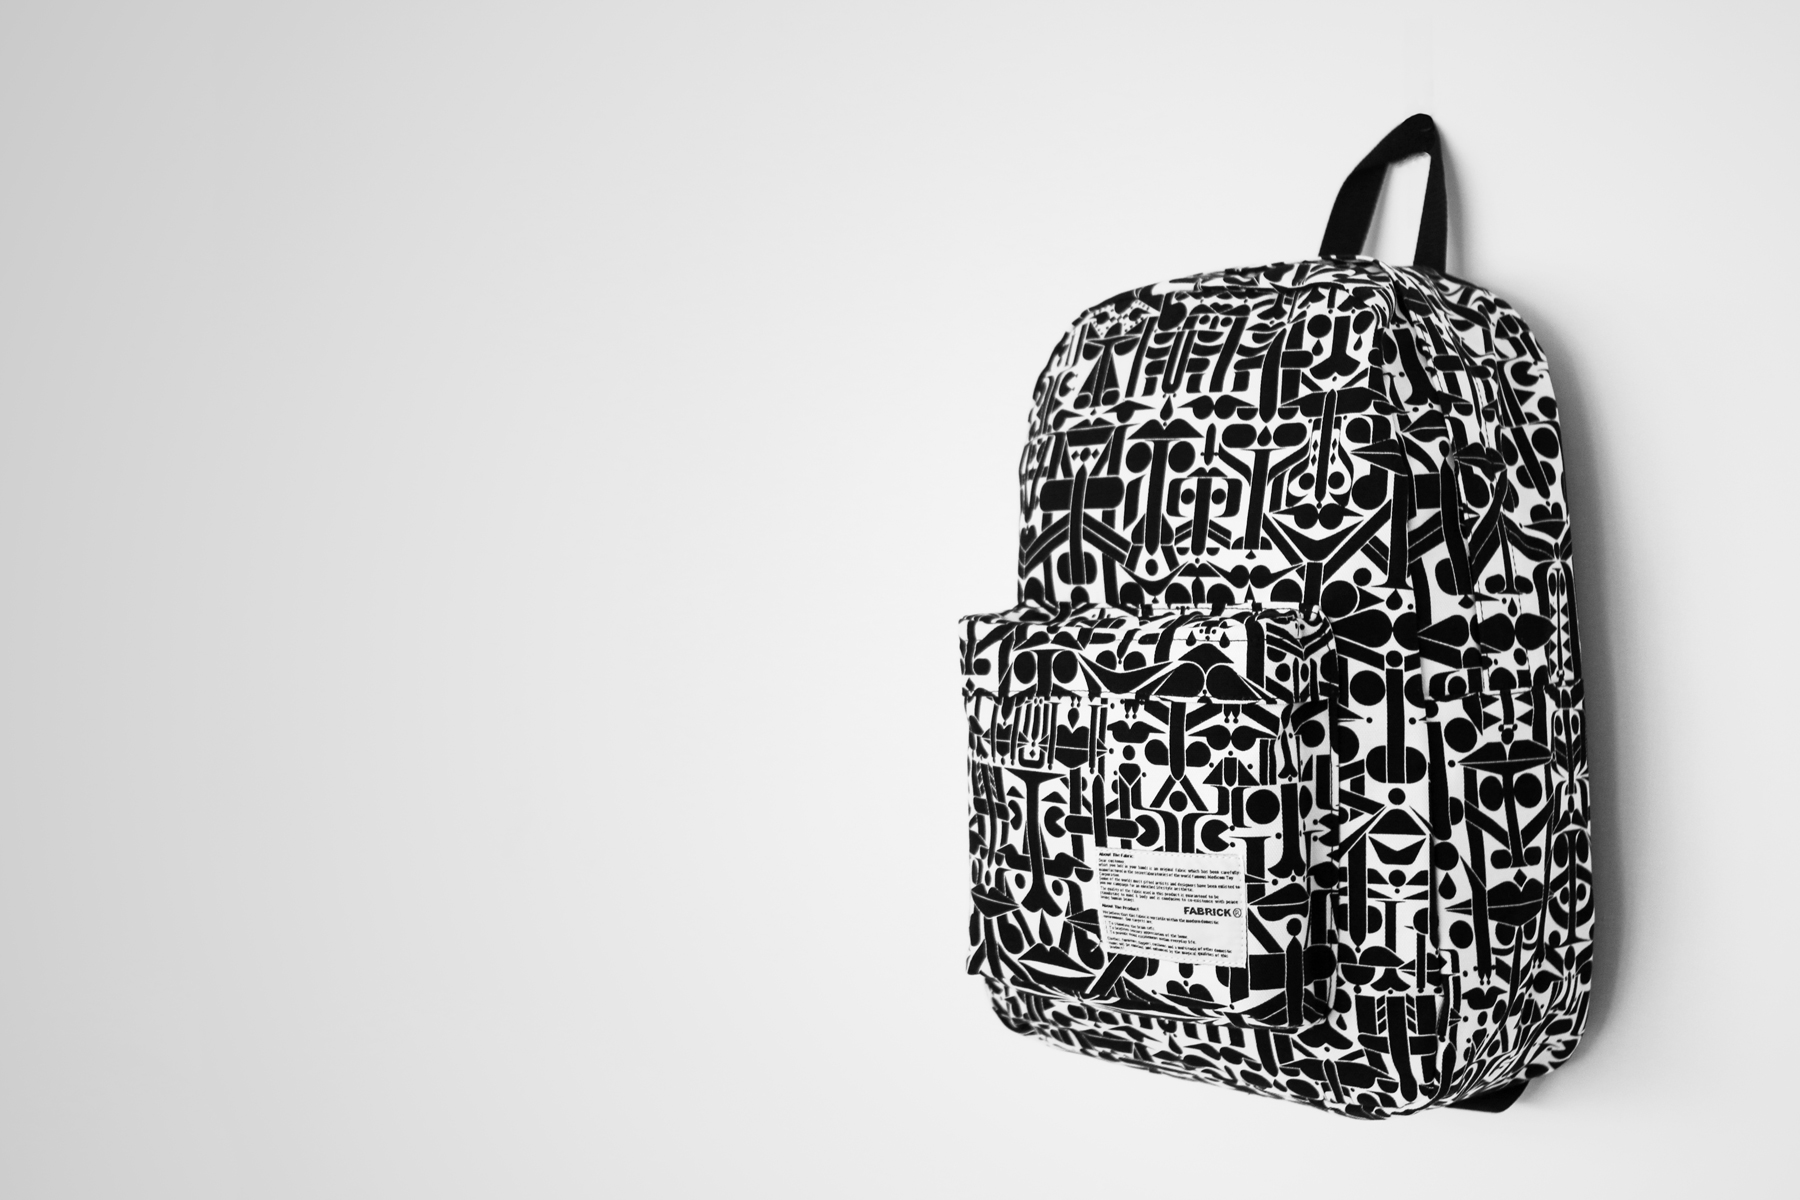 rostarr x medicom toy by fabrick 2014 fall winter bag collection